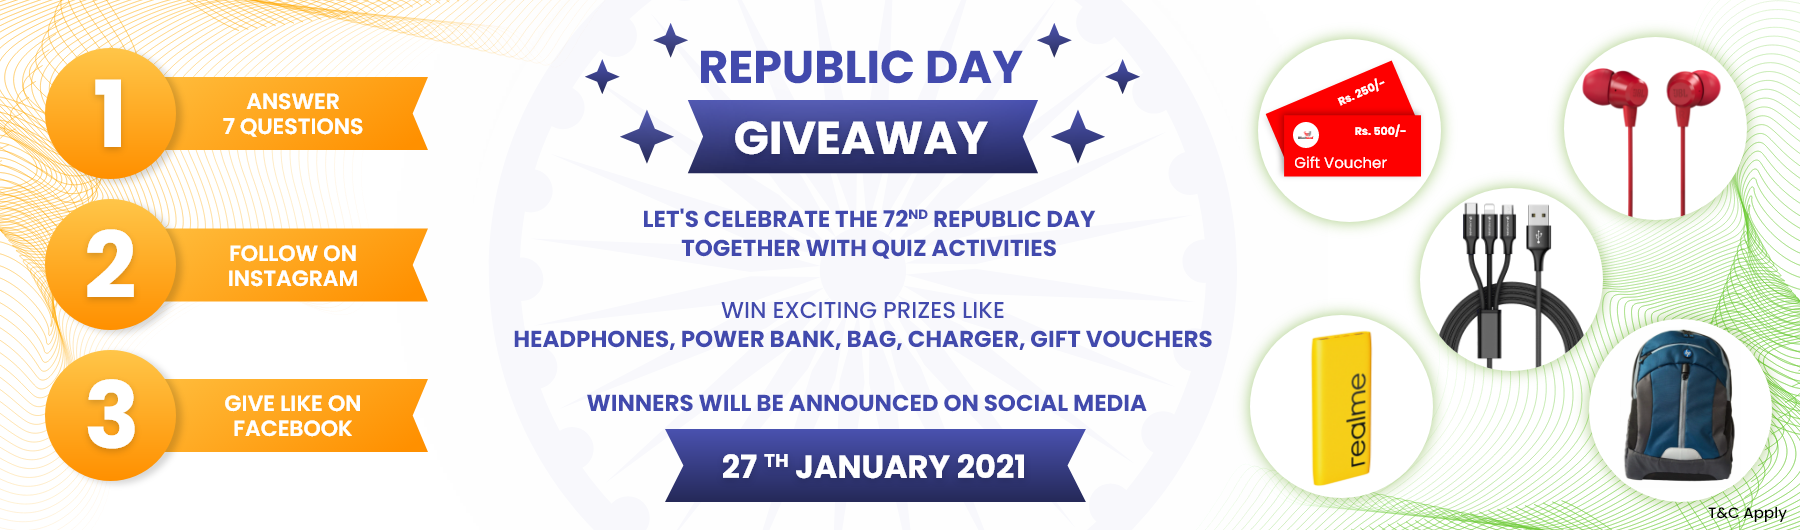 Republic Day Giveaway on windzard